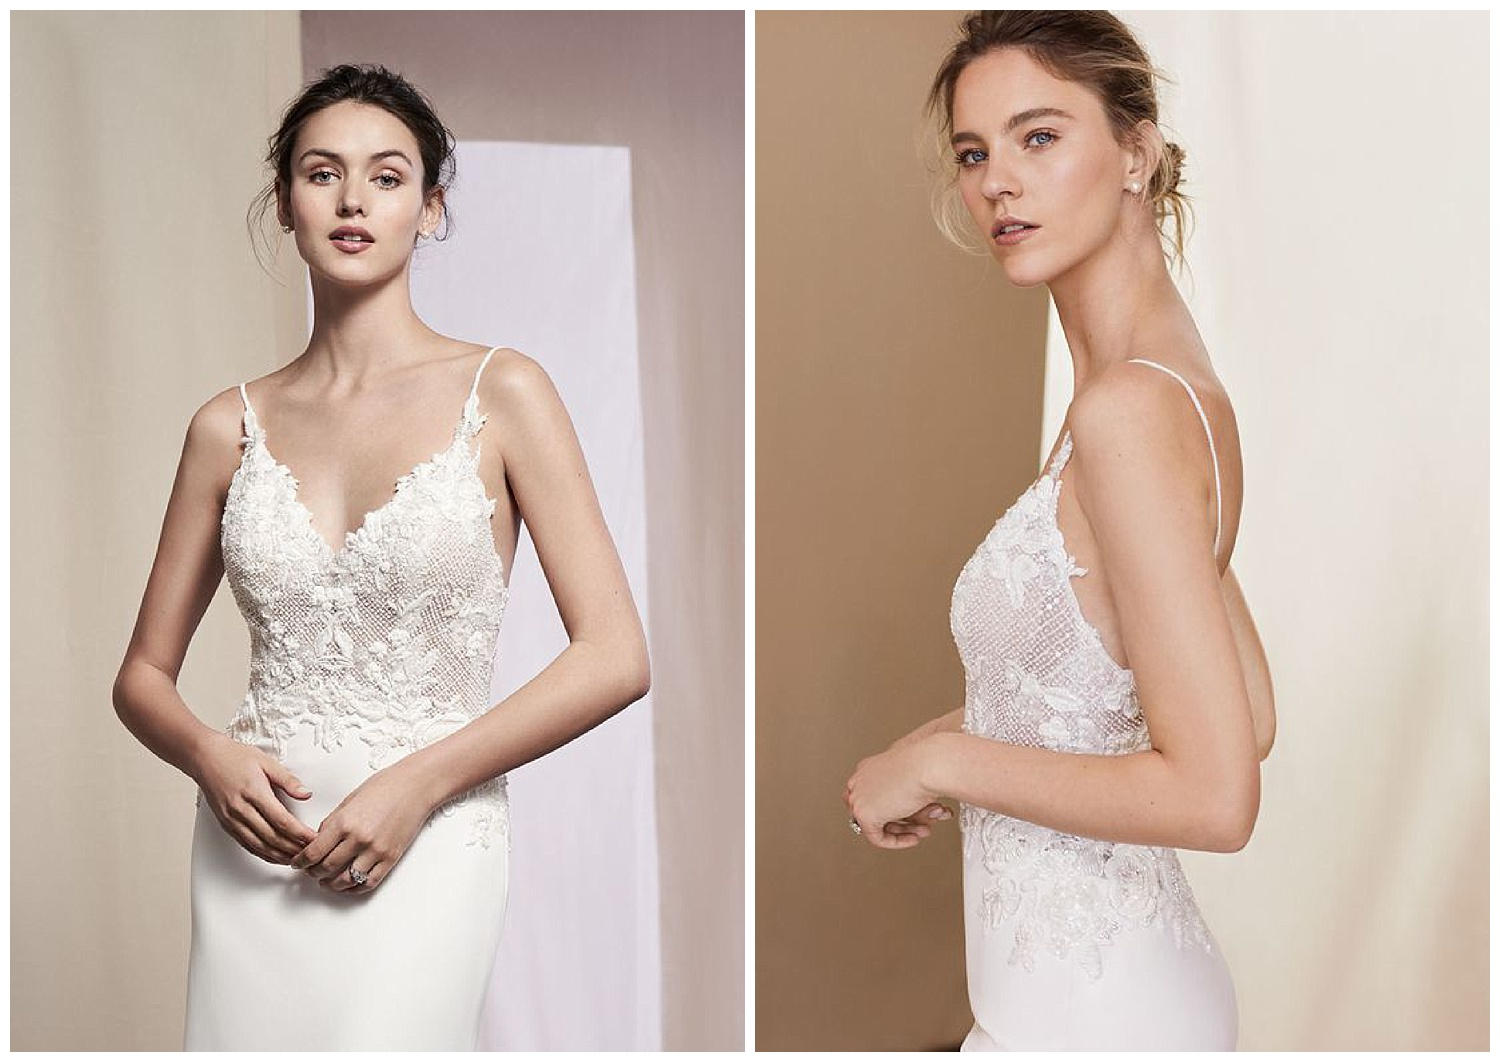 EMBROIDERED BODICE CREPE FIT AND FLARE GOWN - Look your best in this crepe slim gown. Intricate beading with Venice lace illusion bodice. Lace along the back hem finishes the dress.